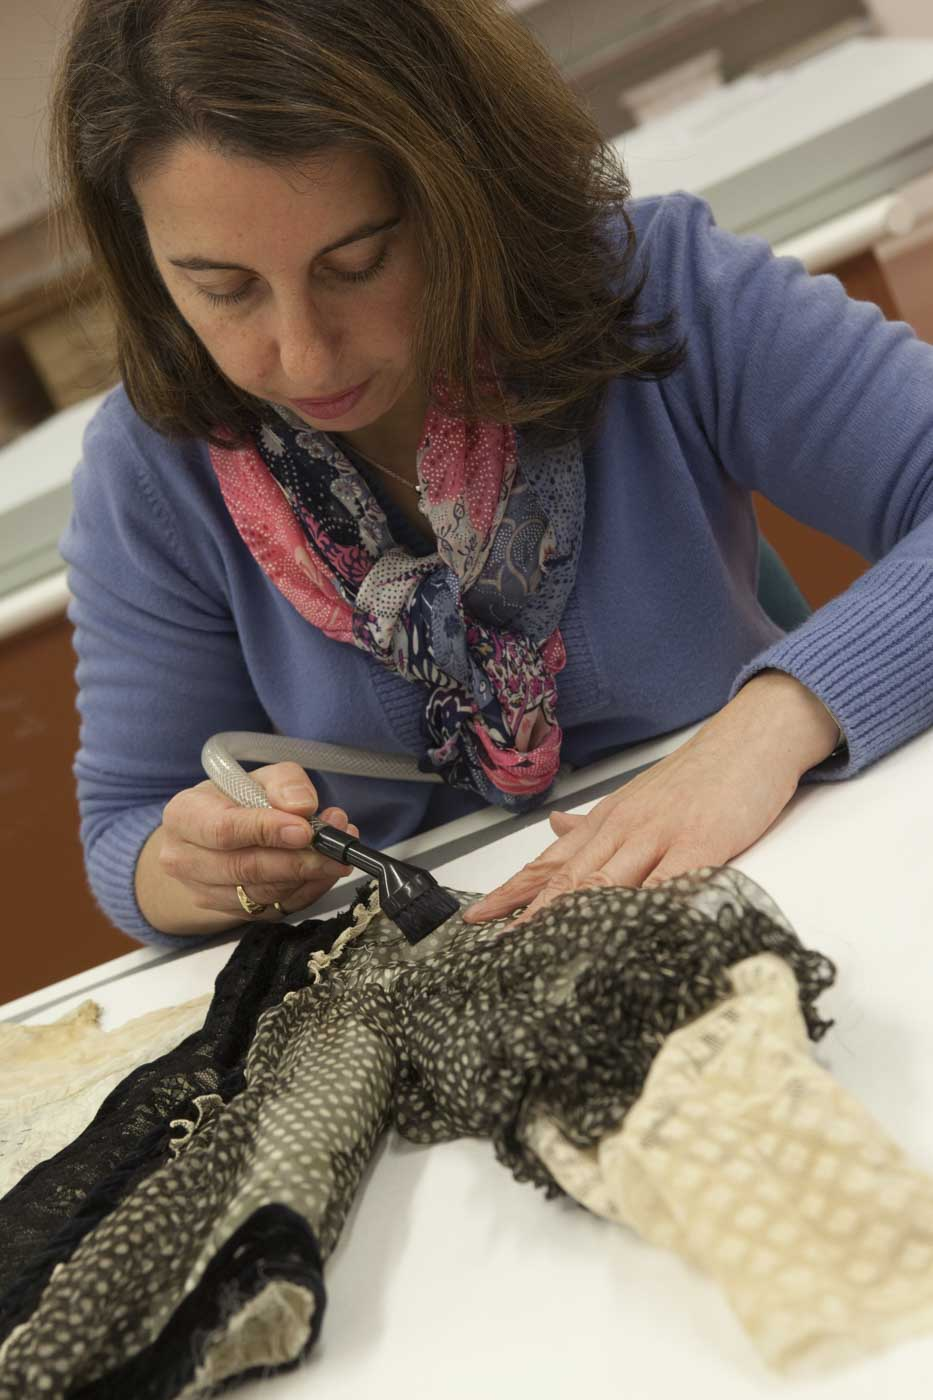 Conservator brush-vacuuming a sleeve on the dress. - click to view larger image